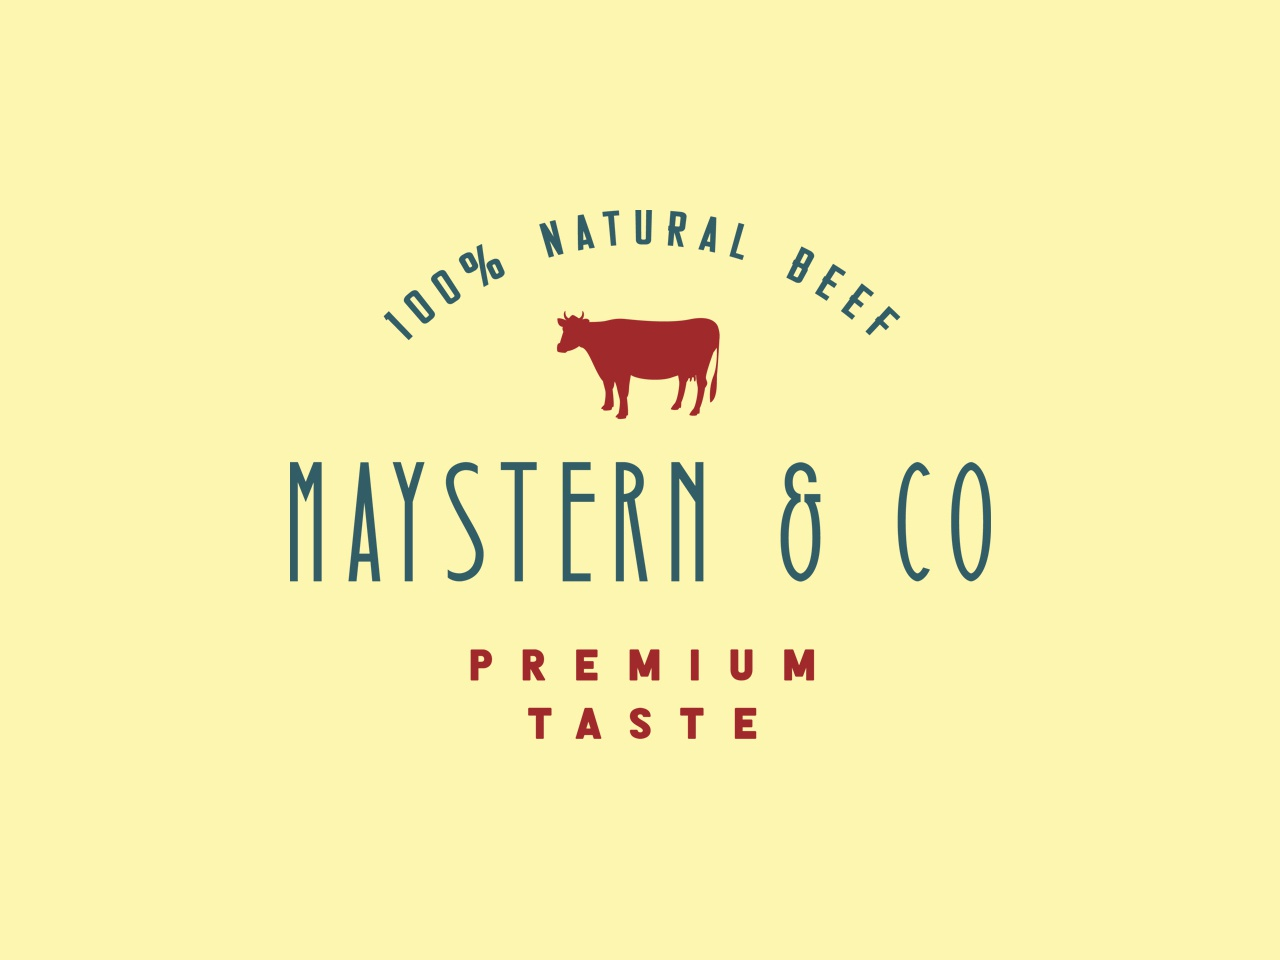 Maystern & Co. simple font type ranch cattle logotype americana display font icon brand badge design typeface branding display typography handcrafted logo vintage retro